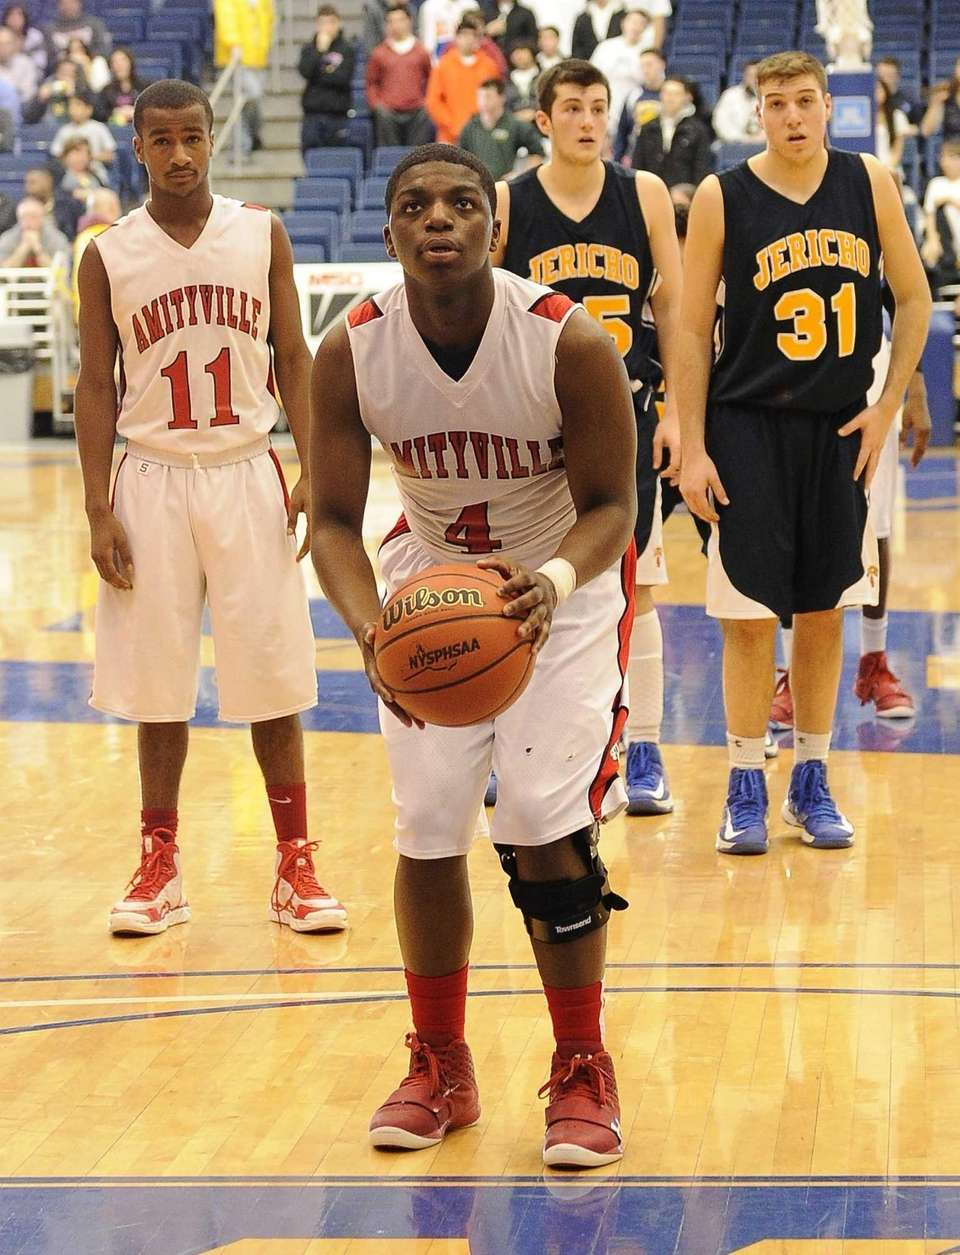 Amityville's Mike Alston shoots from the free throw